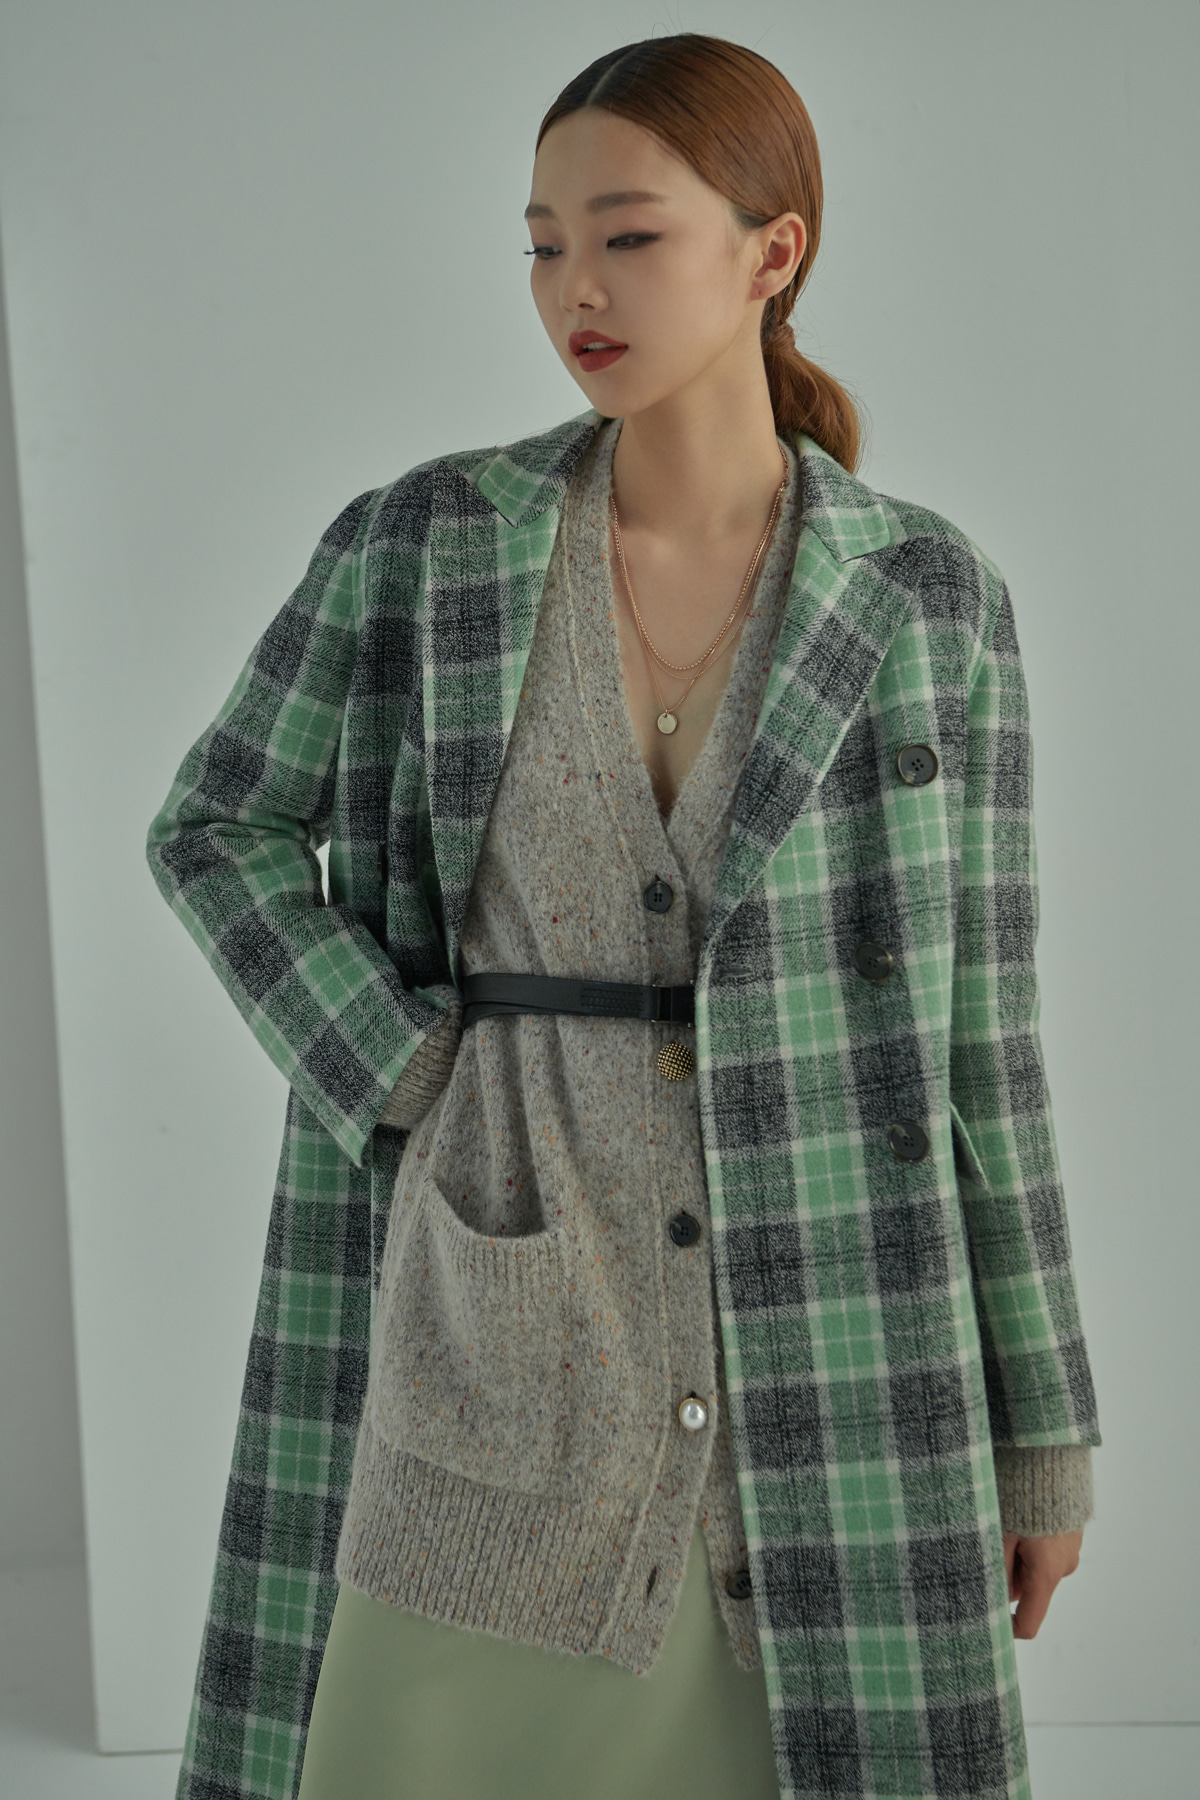 Double Breasted Handmade Tartan Check Coat Green